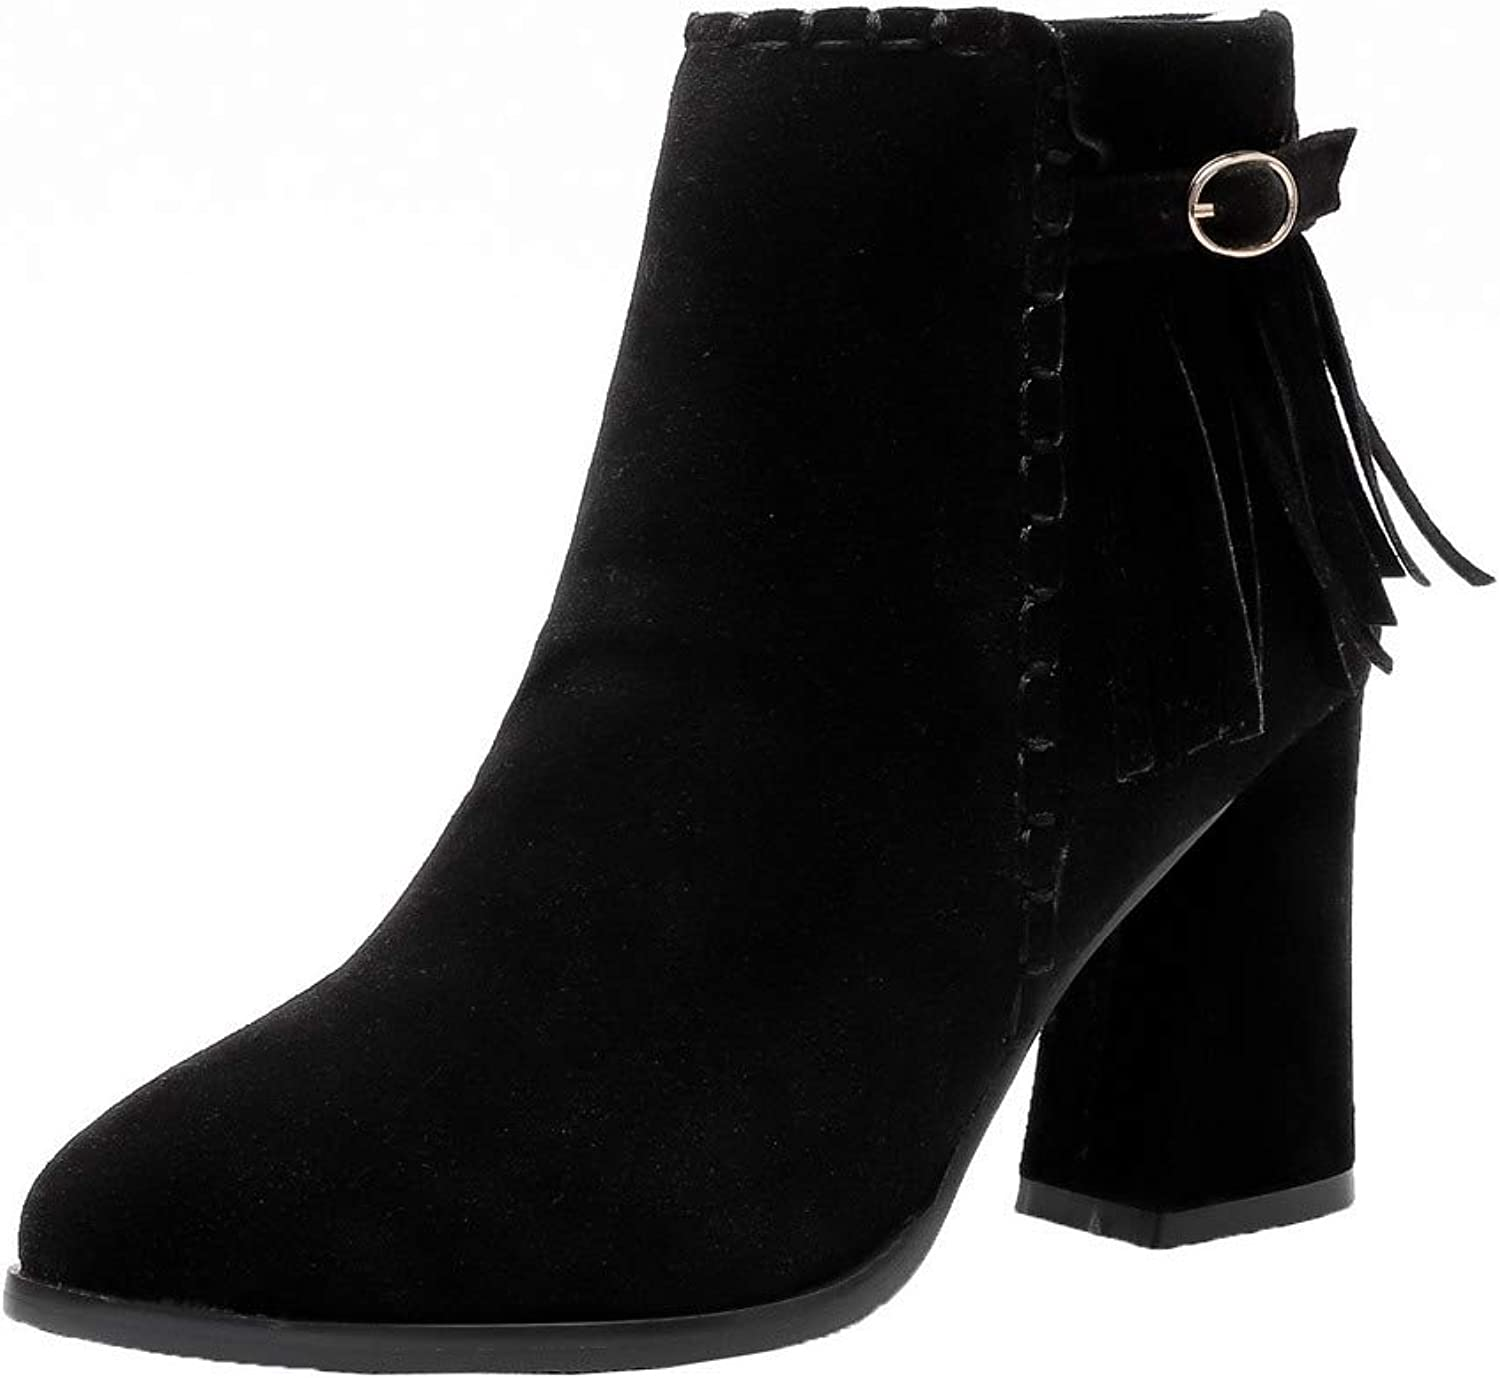 WeiPoot Women's High-Heels Solid Closed-Toe Imitated Suede Zipper Boots, EGHXH121472